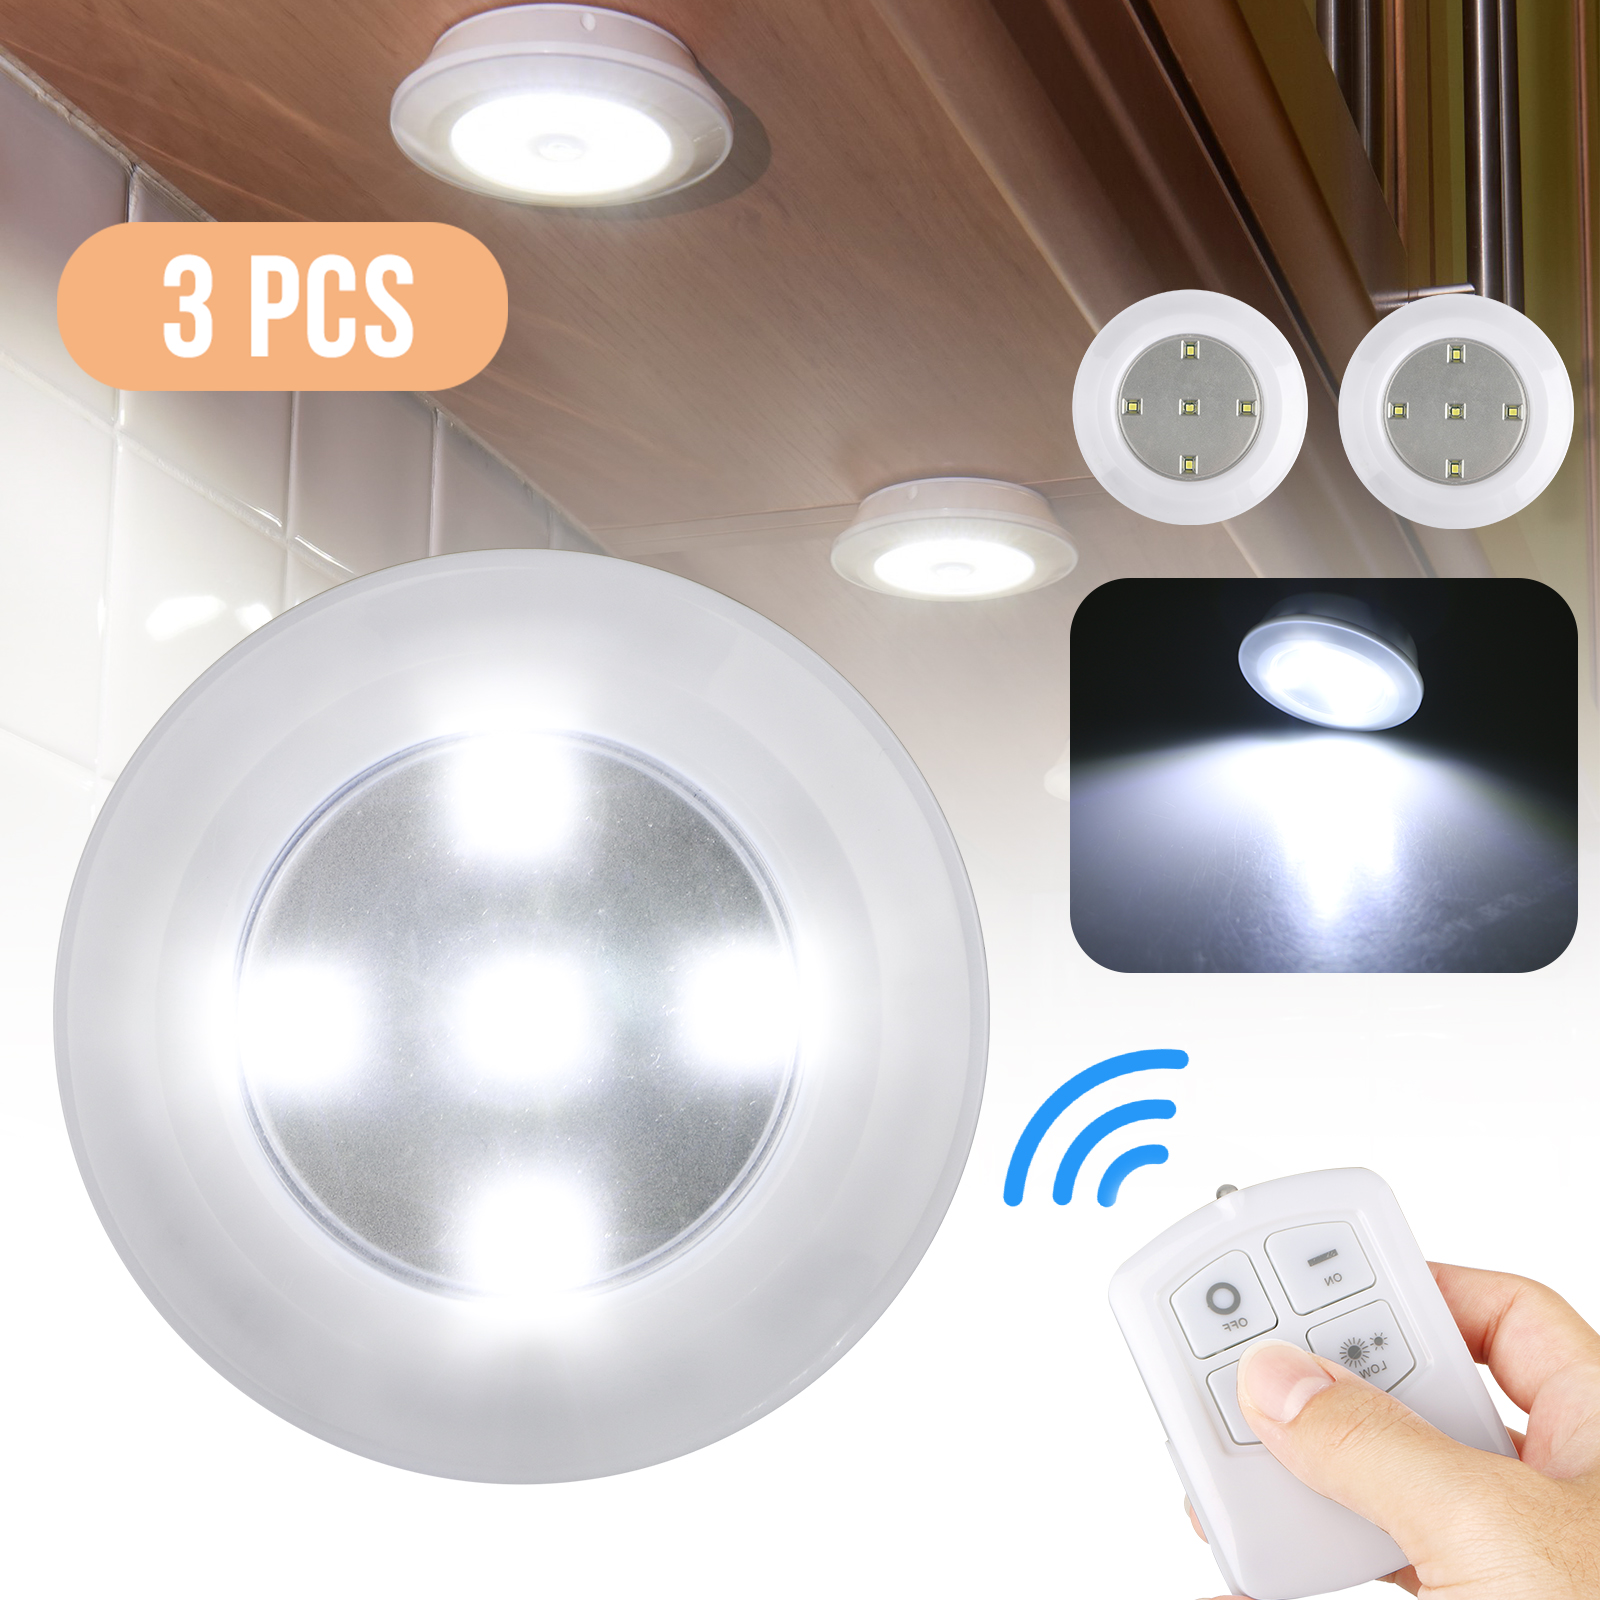 Lights & Lighting 3pcs Remote Control Under Cabinet Light Kitchen Wardrobe Cupboard Durable White Closet Bedroom Cabinet Wireless Light